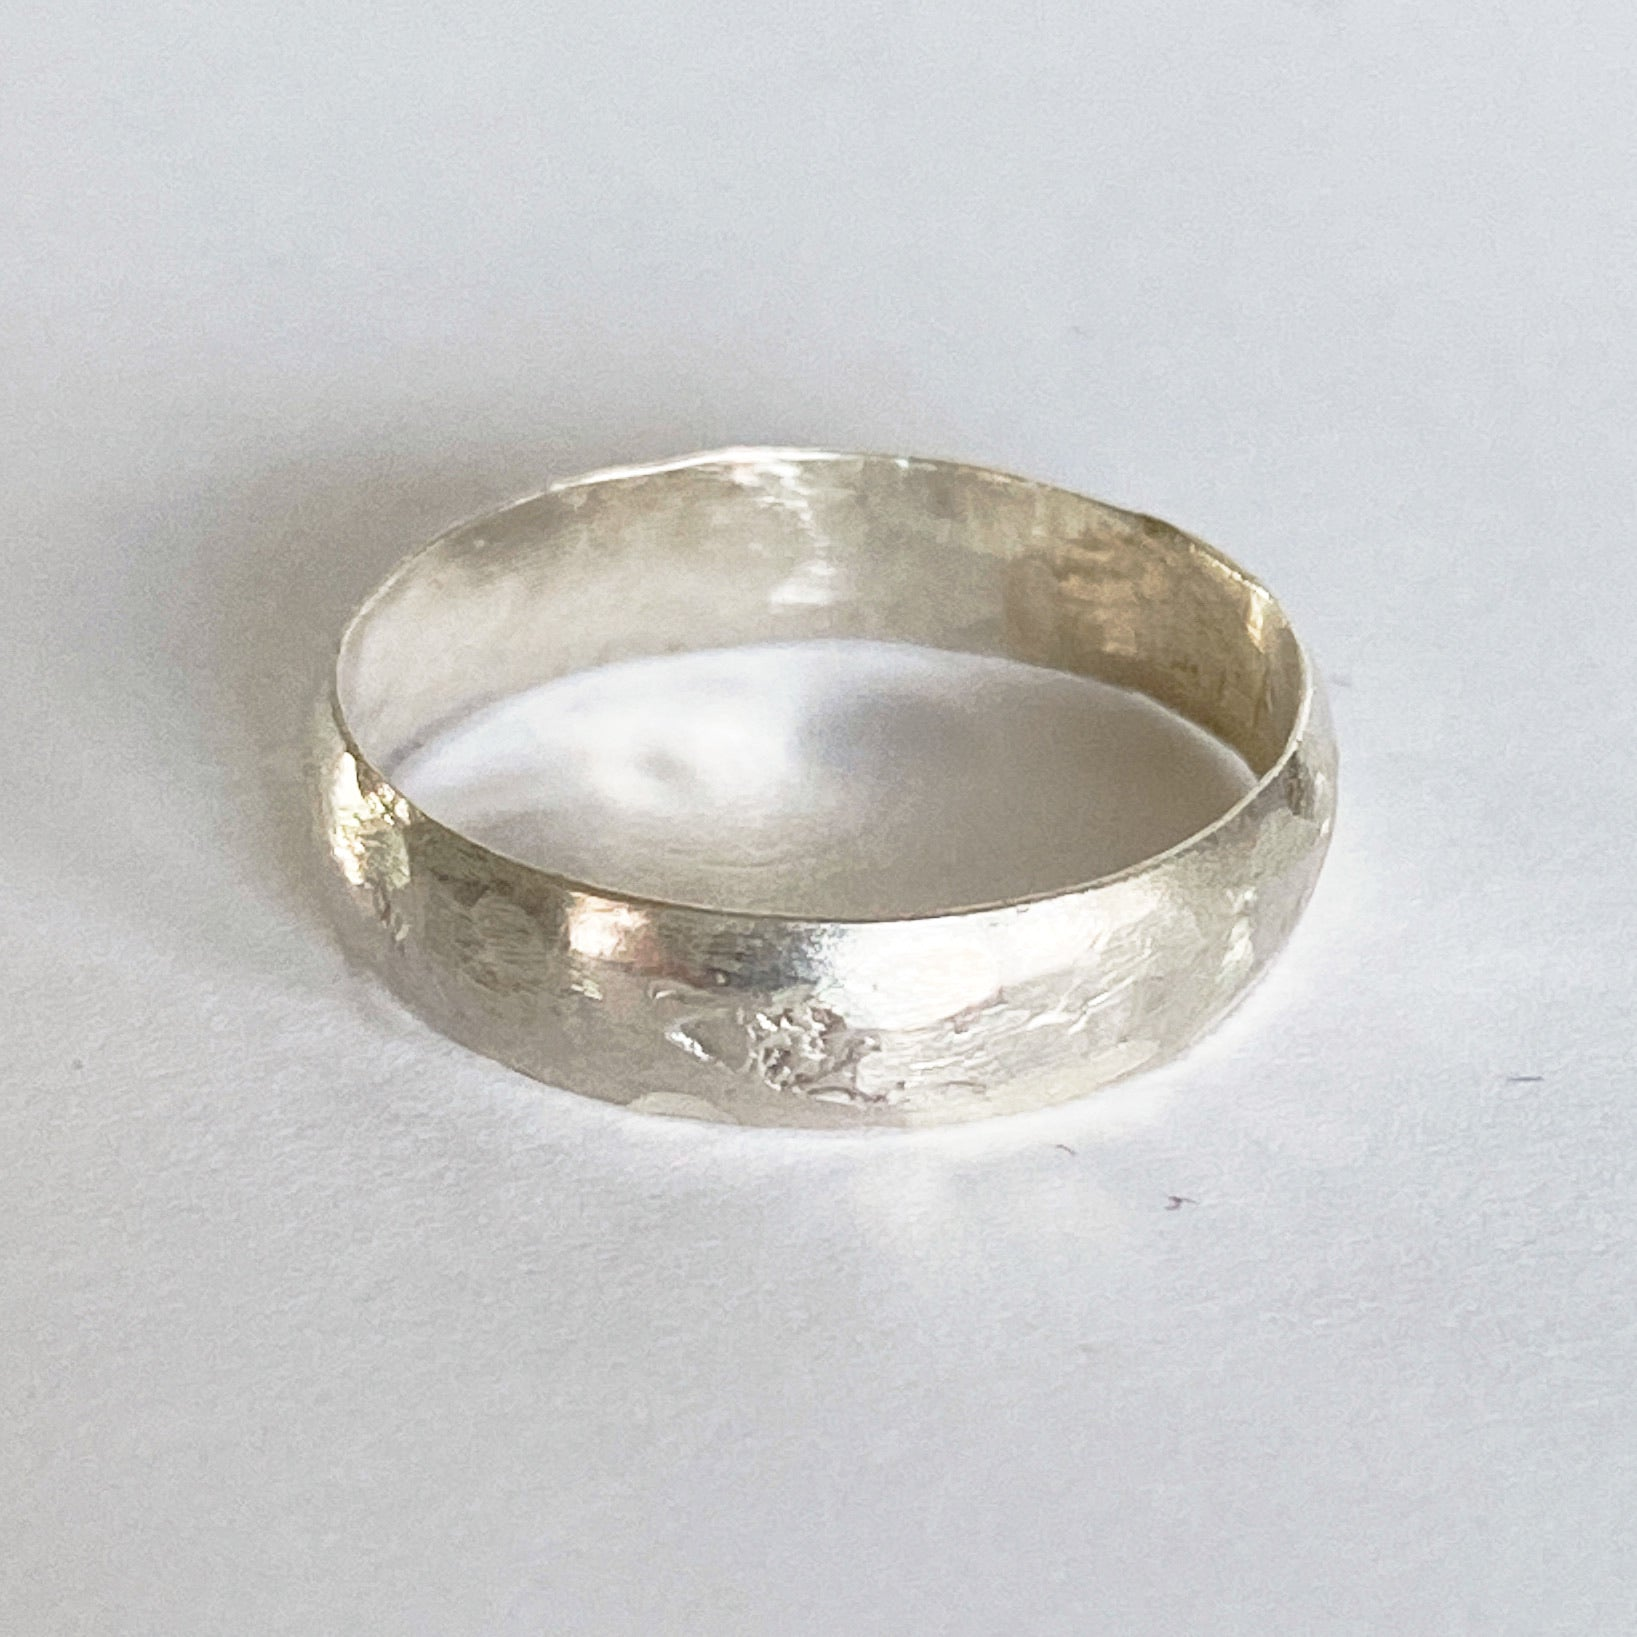 Handmade Hammered Sterling Silver Ring size 8